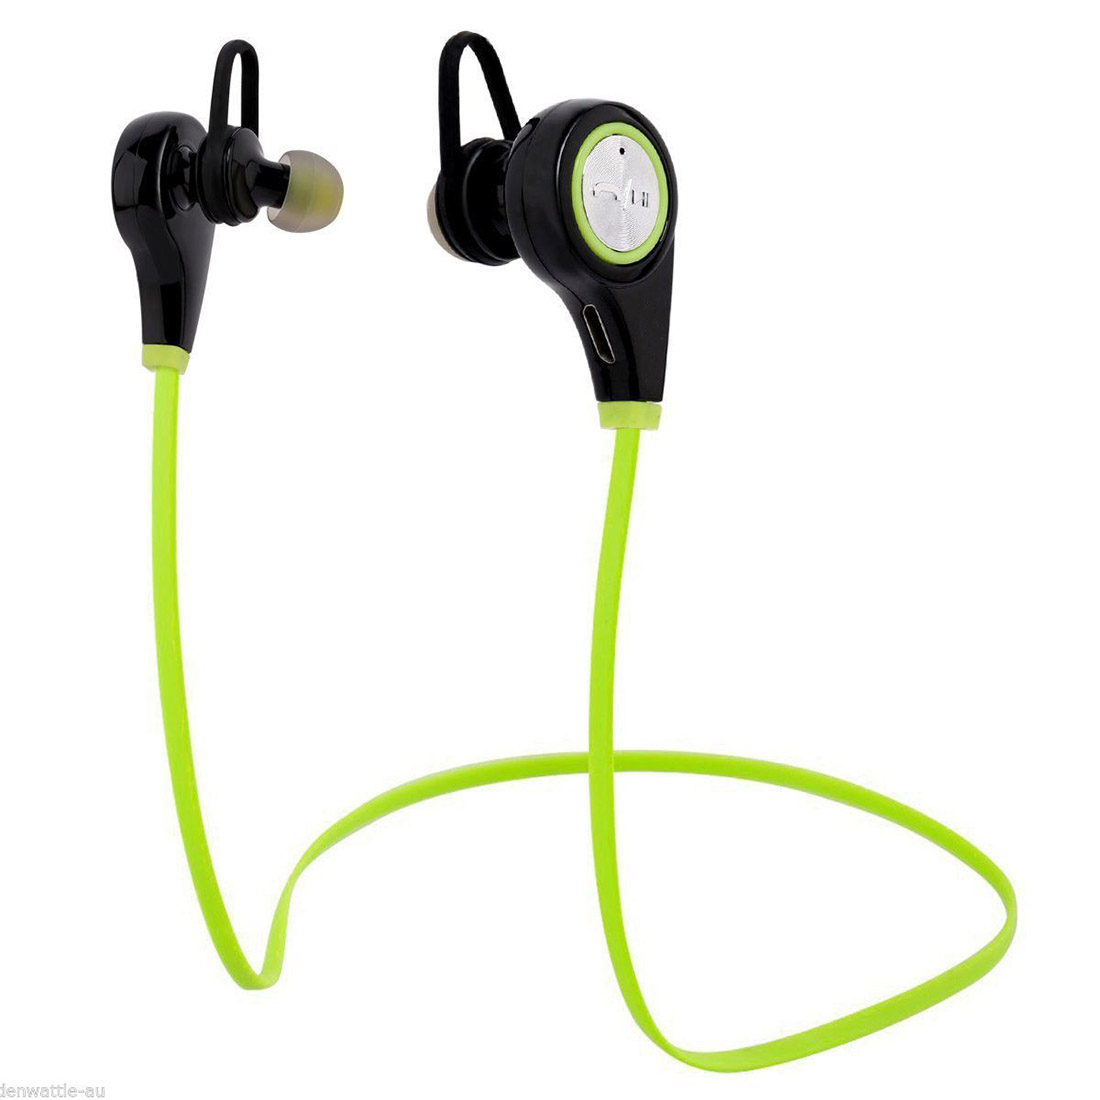 Q9 Bluetooth 4.1 Wireless Sports Headphones Stereo Headset for Smartphone